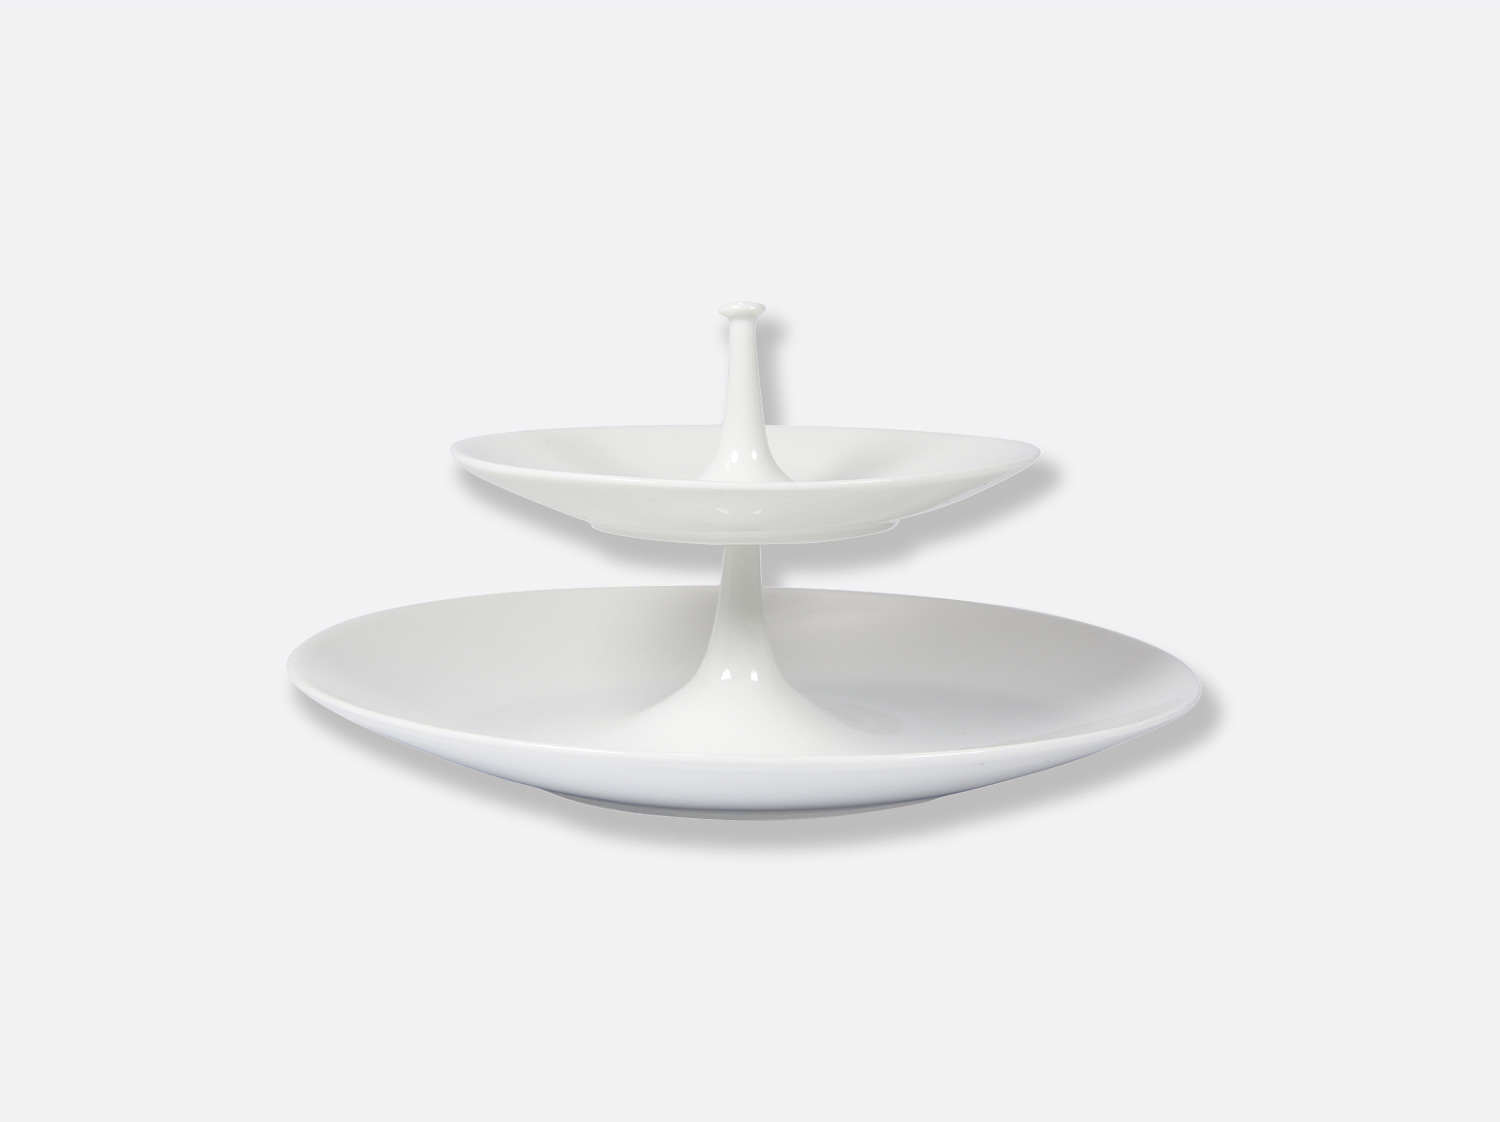 China 2-tier tray of the collection Bulle | Bernardaud